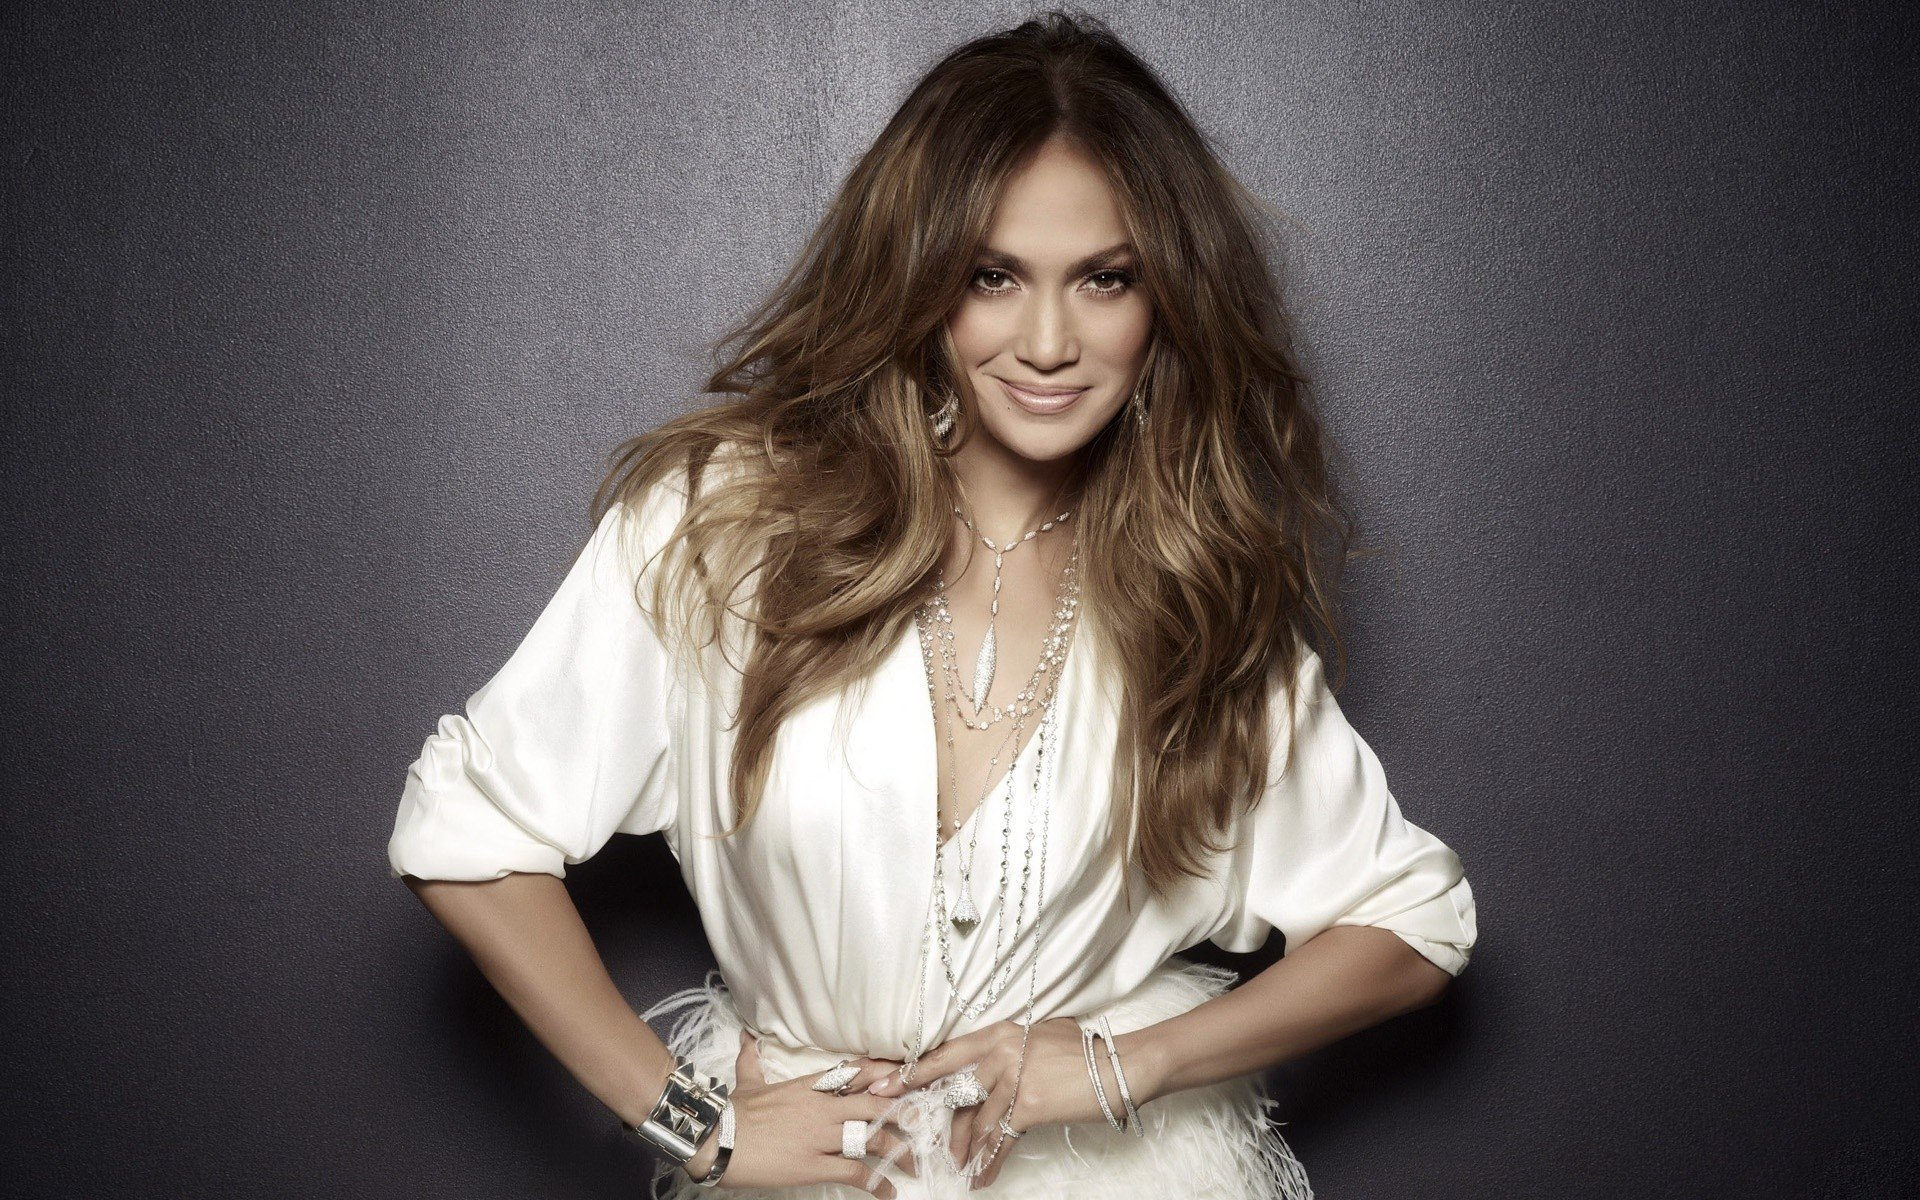 Jennifer Lopez is a popular singer television personality and actress She broke out as a dancer on In Living Color Learn more about her today!